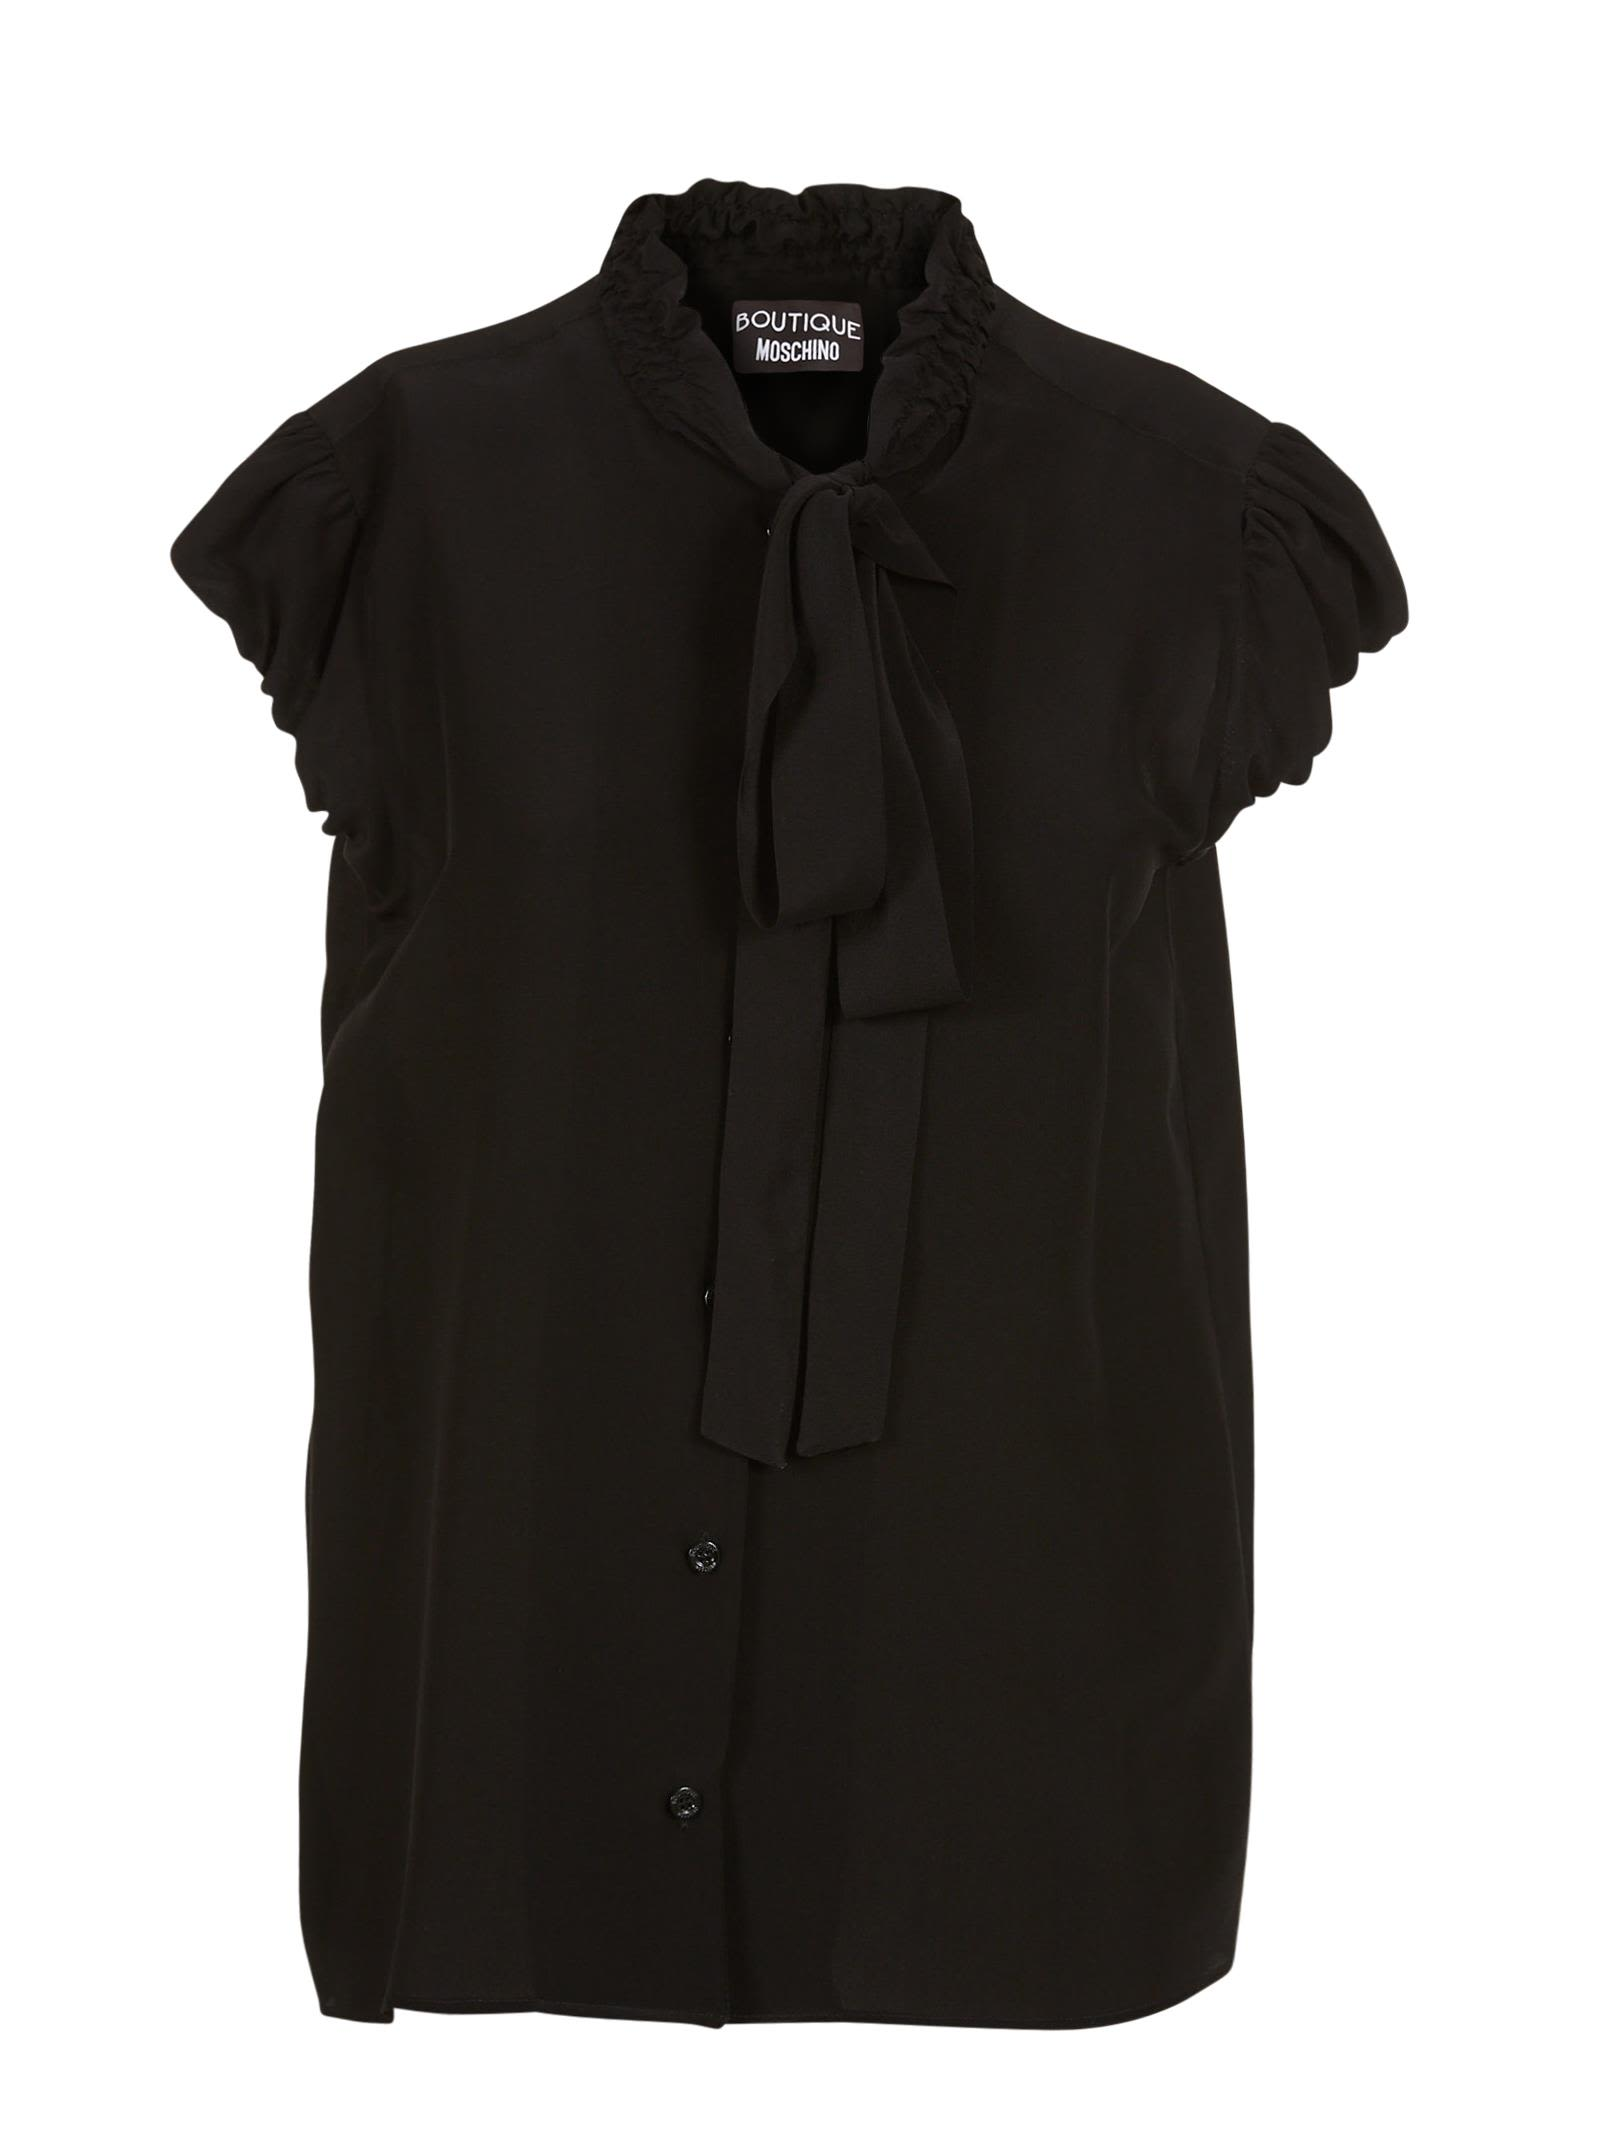 Boutique Moschino Frilled Blouse